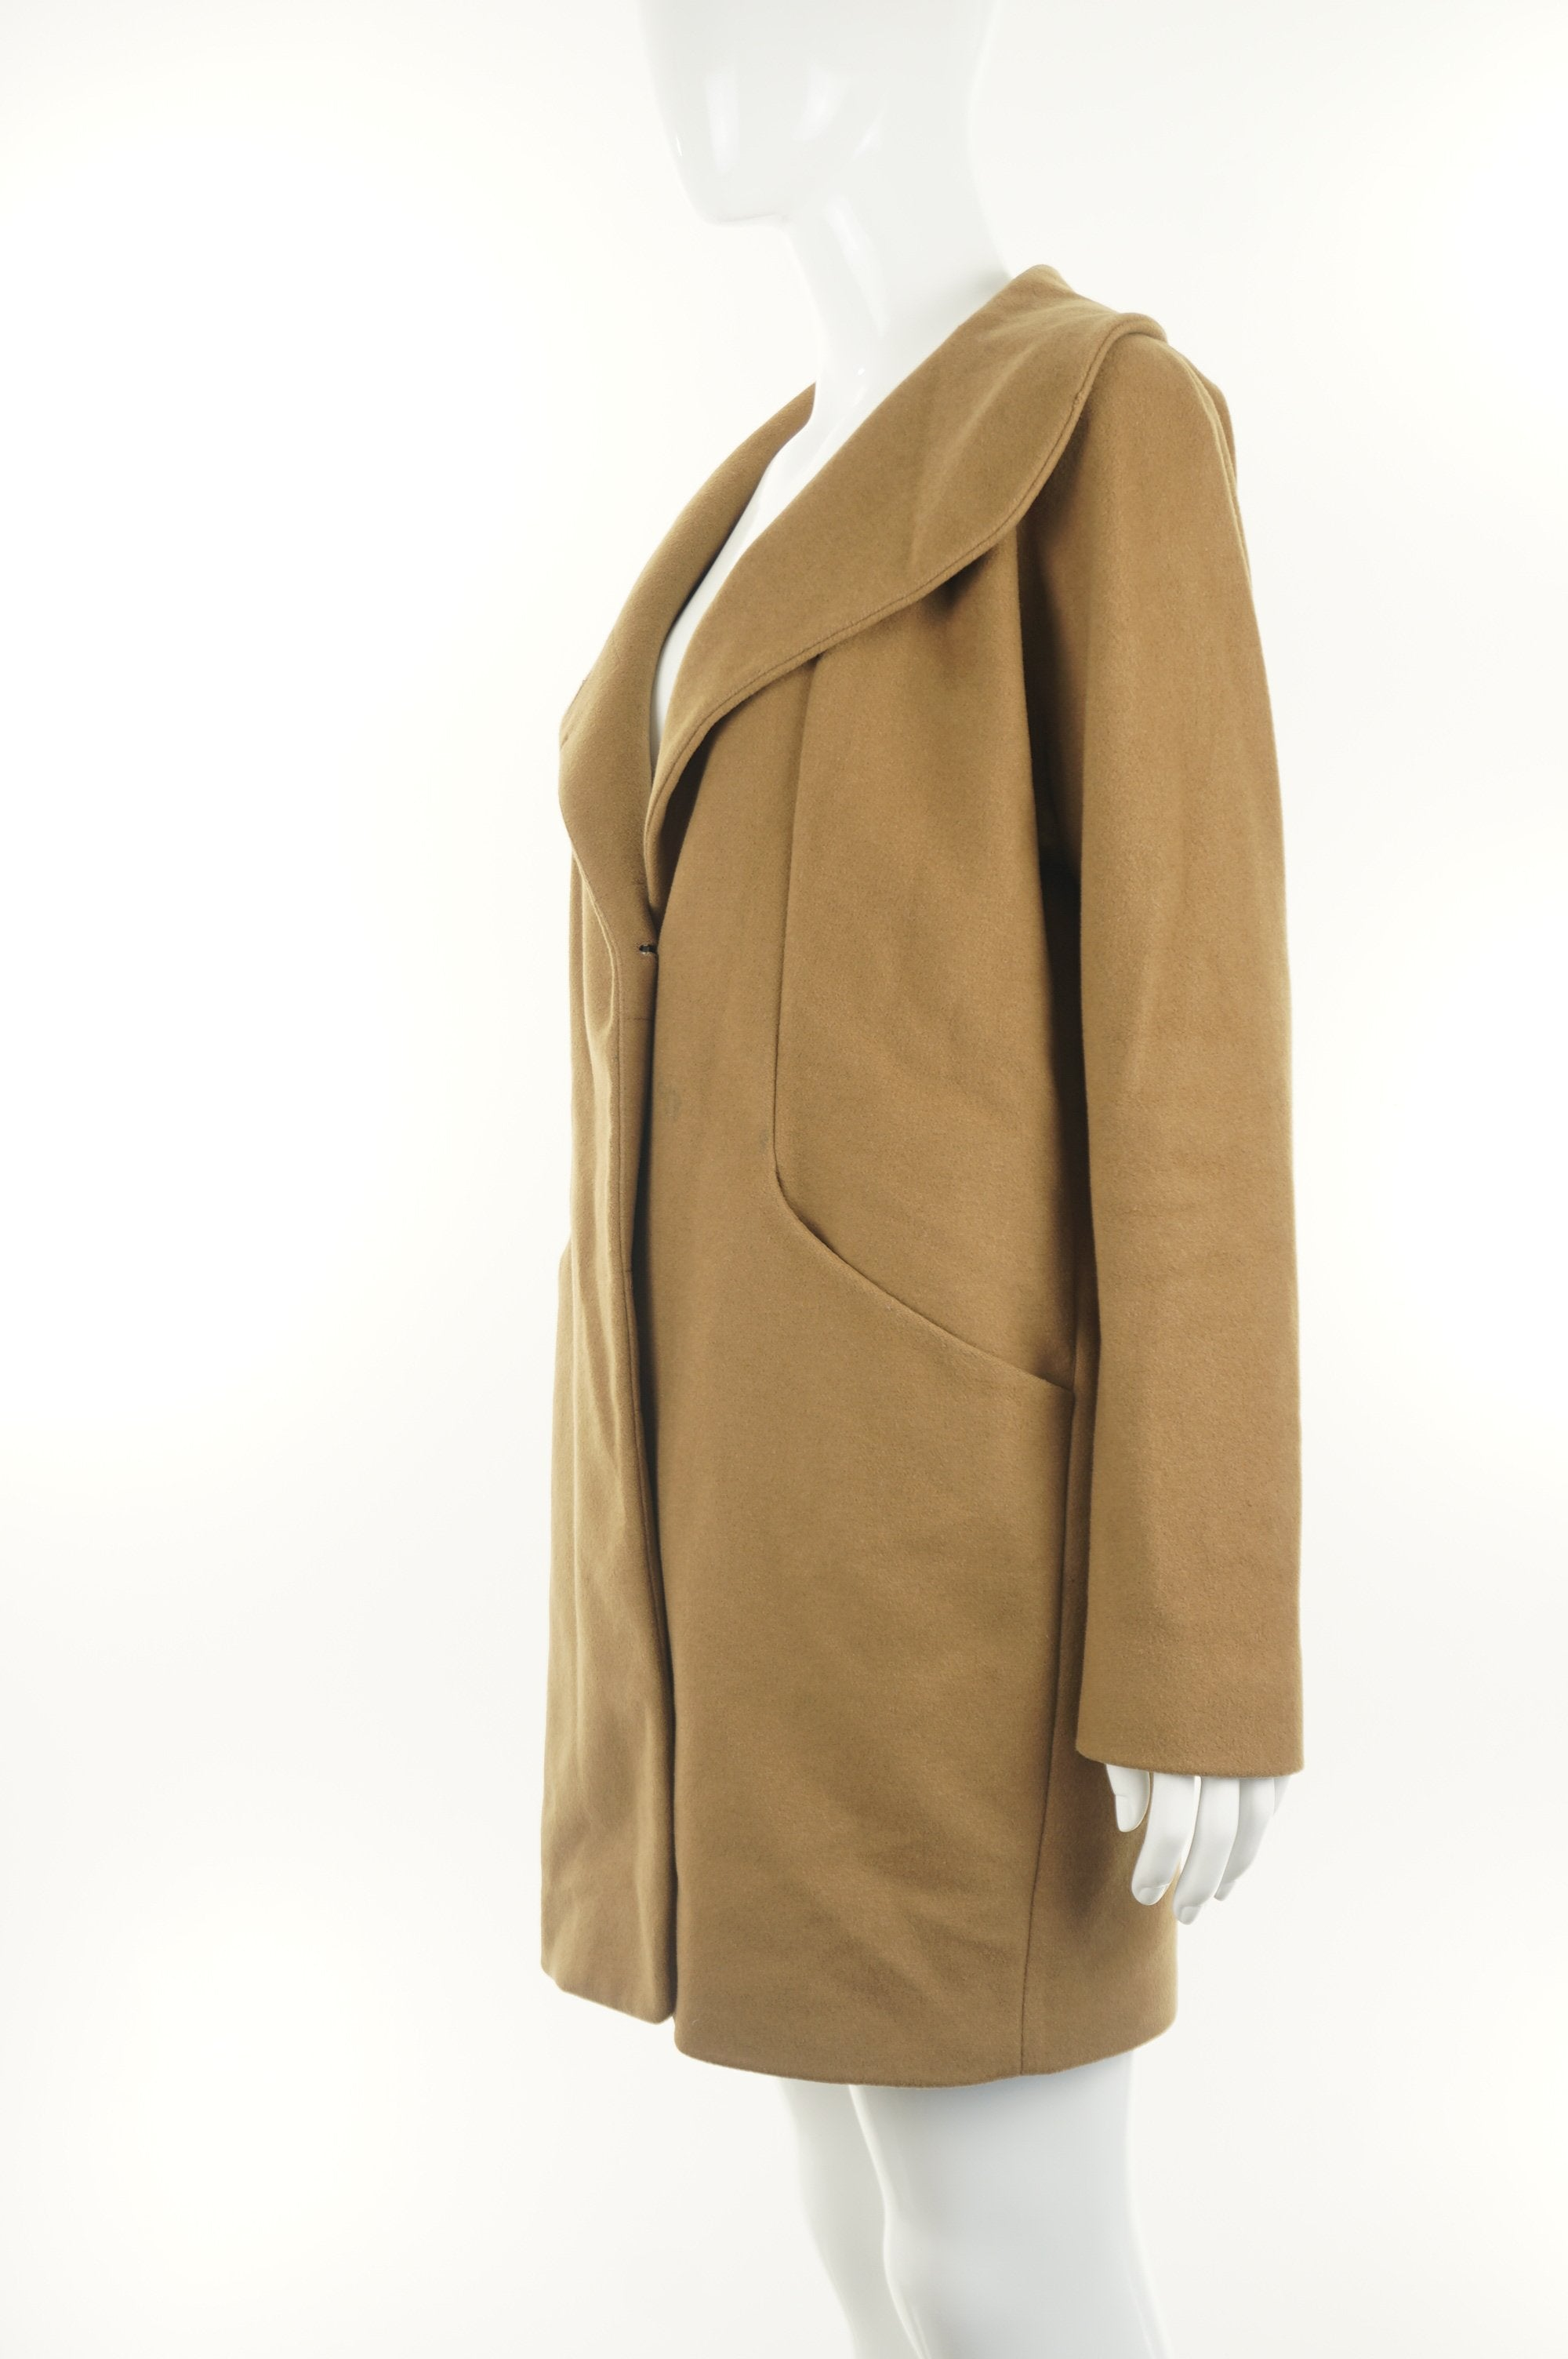 Wilfred Warm Winter Wool Coat, Aritzia's winter favorite. Wool and cashmere winter coat. Streamlined design with warm collar to be worn up or down. Made in Canada;), Brown, Exterior: 70% Wool, 20% Polyamide, 10% cashmere, women's wool coat, aritzia winter coat, aritzia wool coat, aritzia cashmere coat for winter